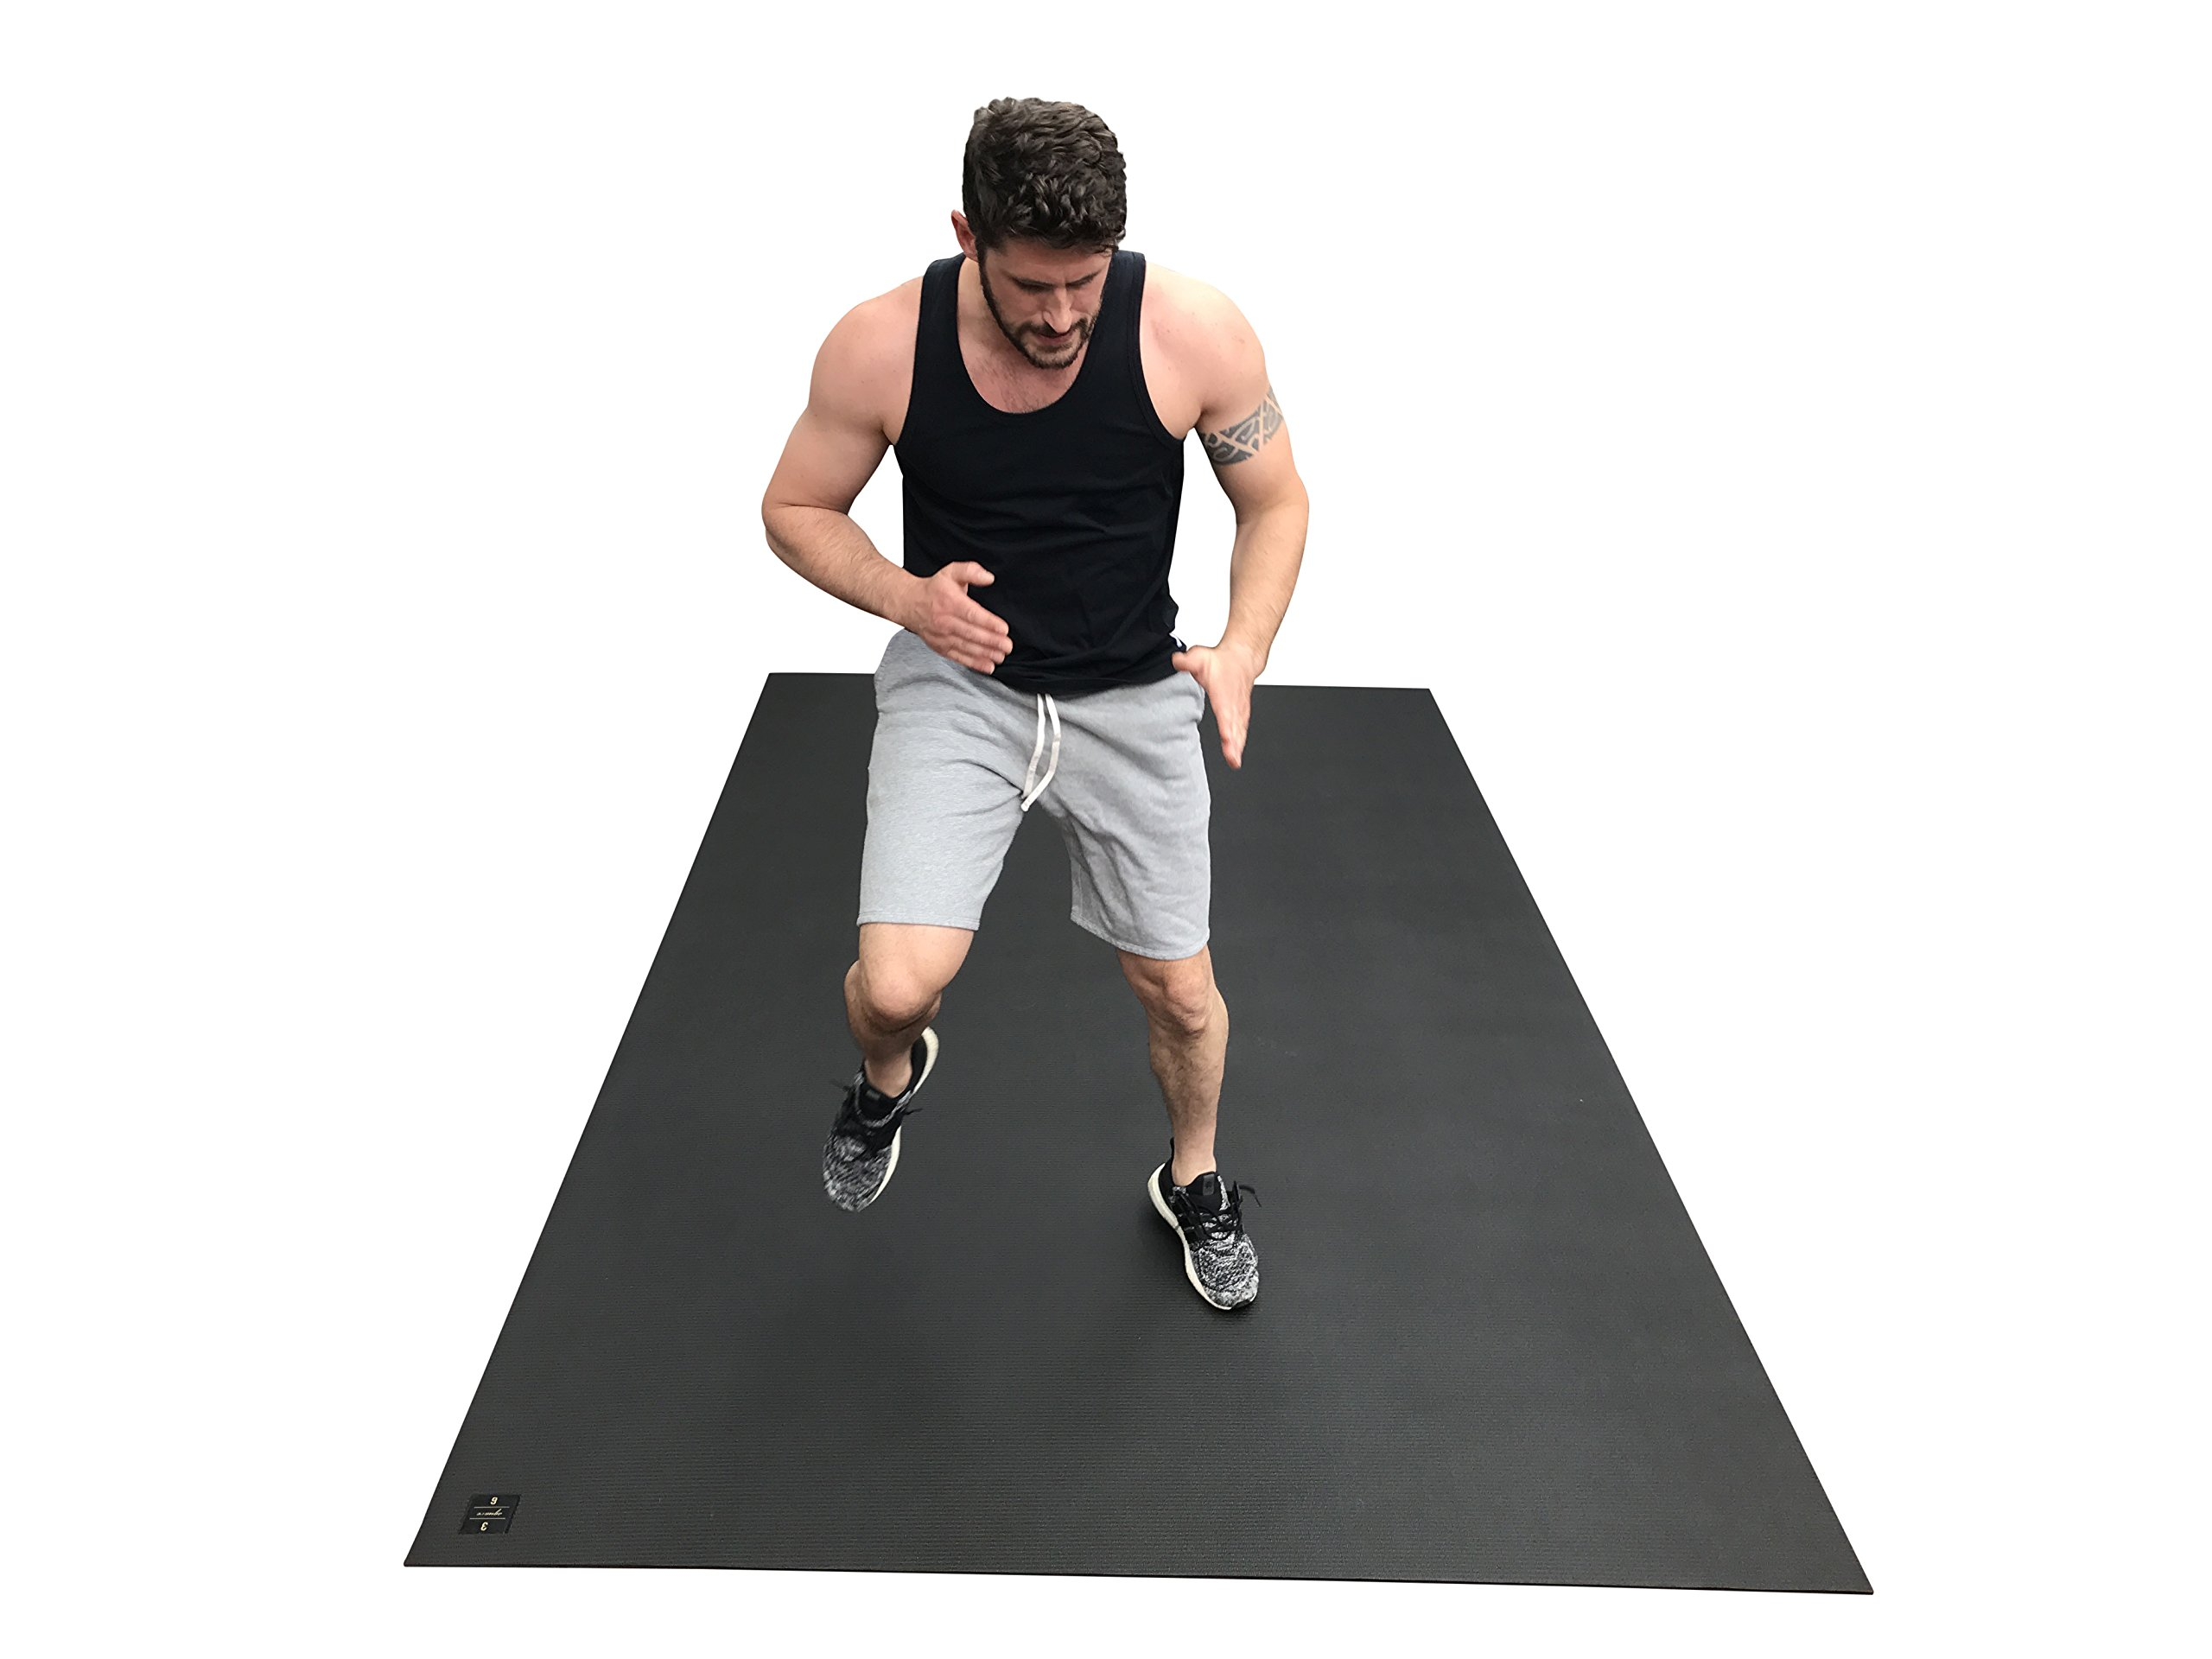 Large Exercise Mat 10 Ft X 6 Ft (120'' x 72'' x 1/4''). Designed For Cardio Workouts WITH Shoes. Perfect For MMA, Cardio And Plyometric Workouts. Ideal For Home Gyms Or Living Room Workouts. Square36 by Square36 (Image #7)